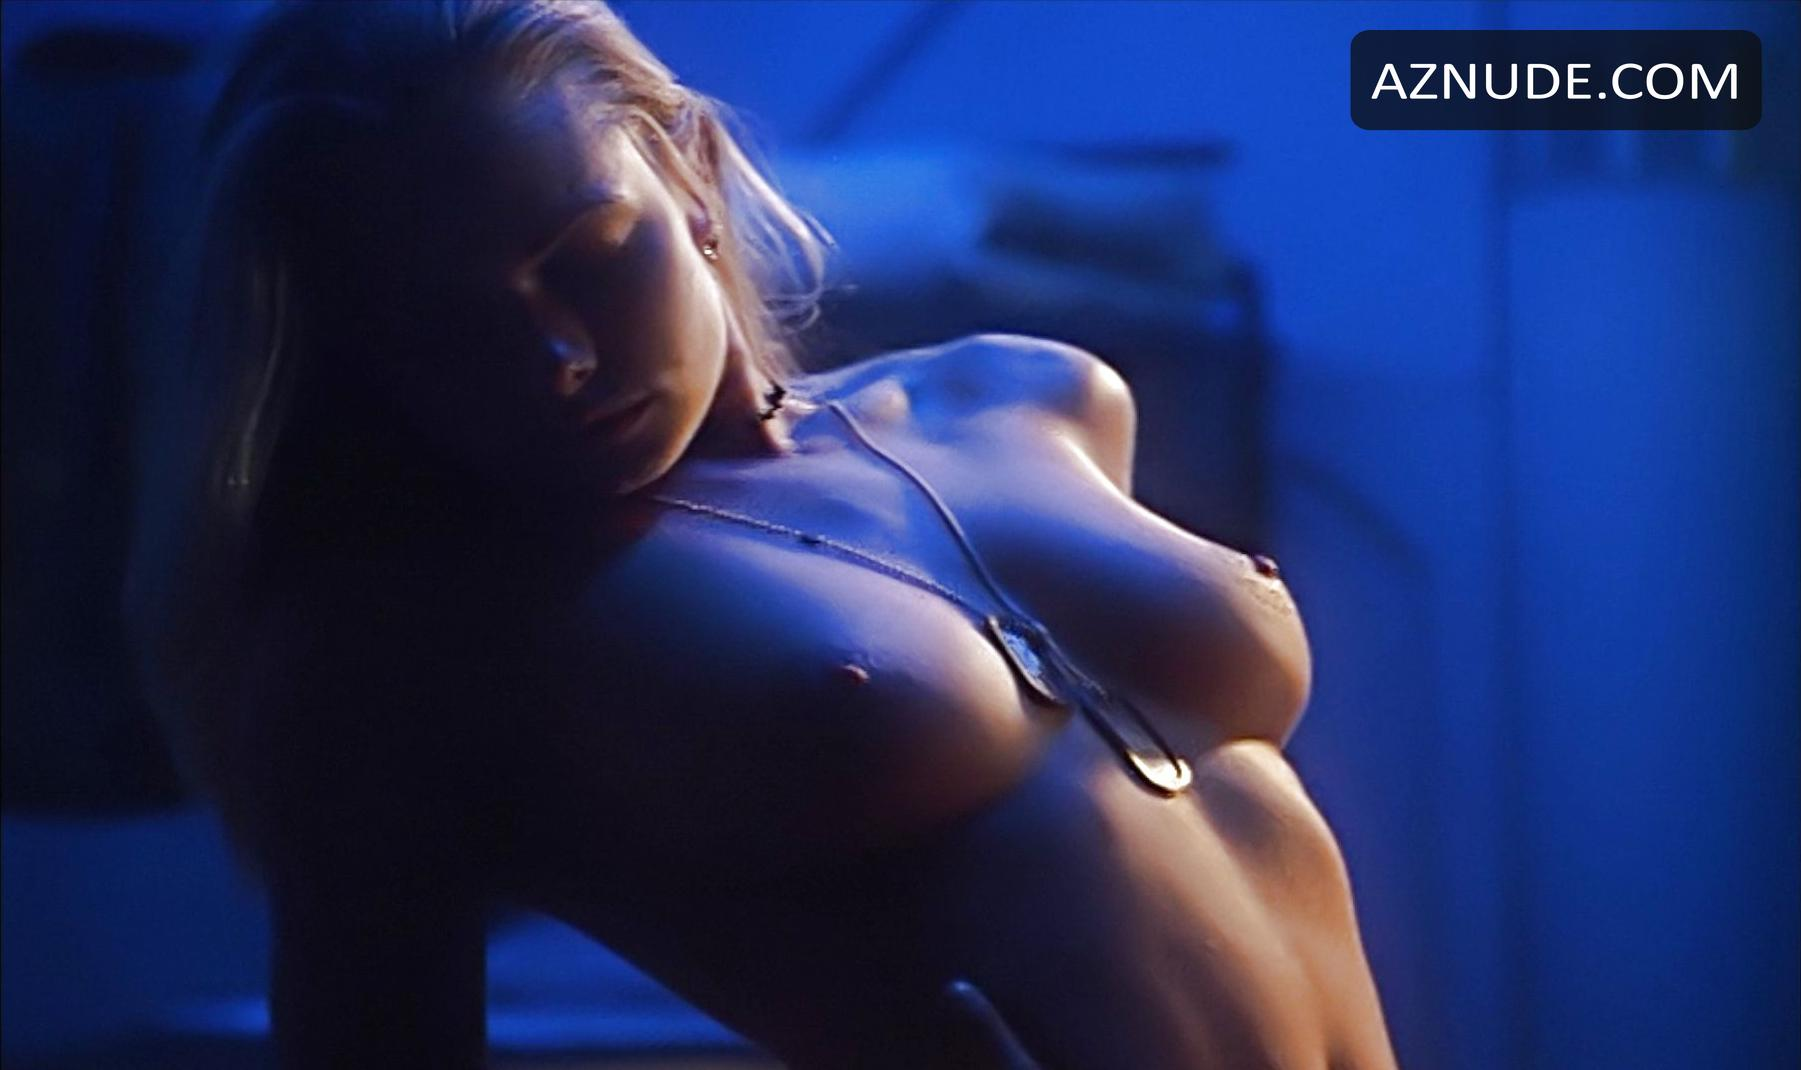 Jaime pressly absolution